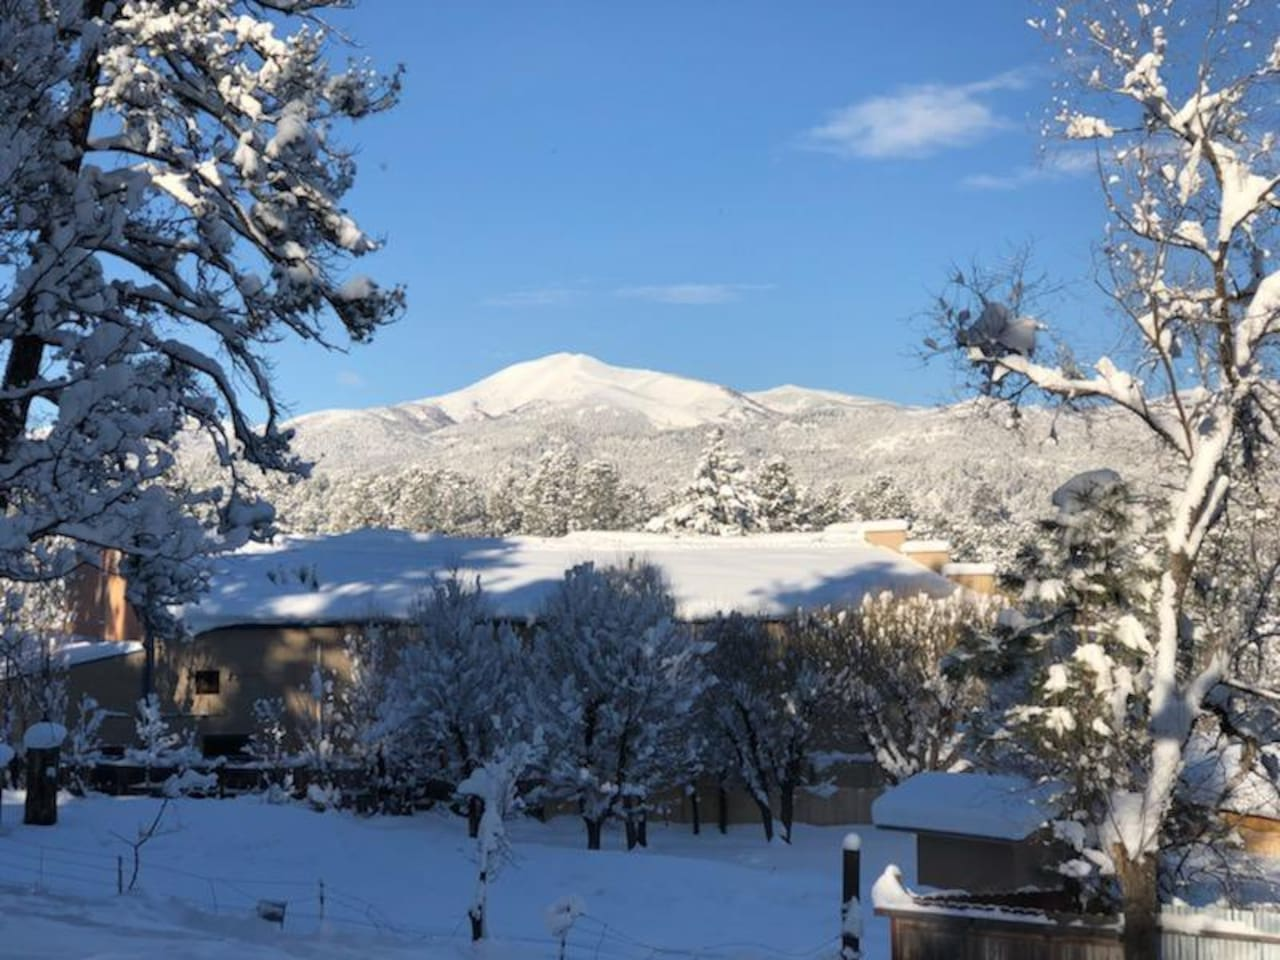 Sierra Blanca,it is a winter view but I love this pic from our front porch